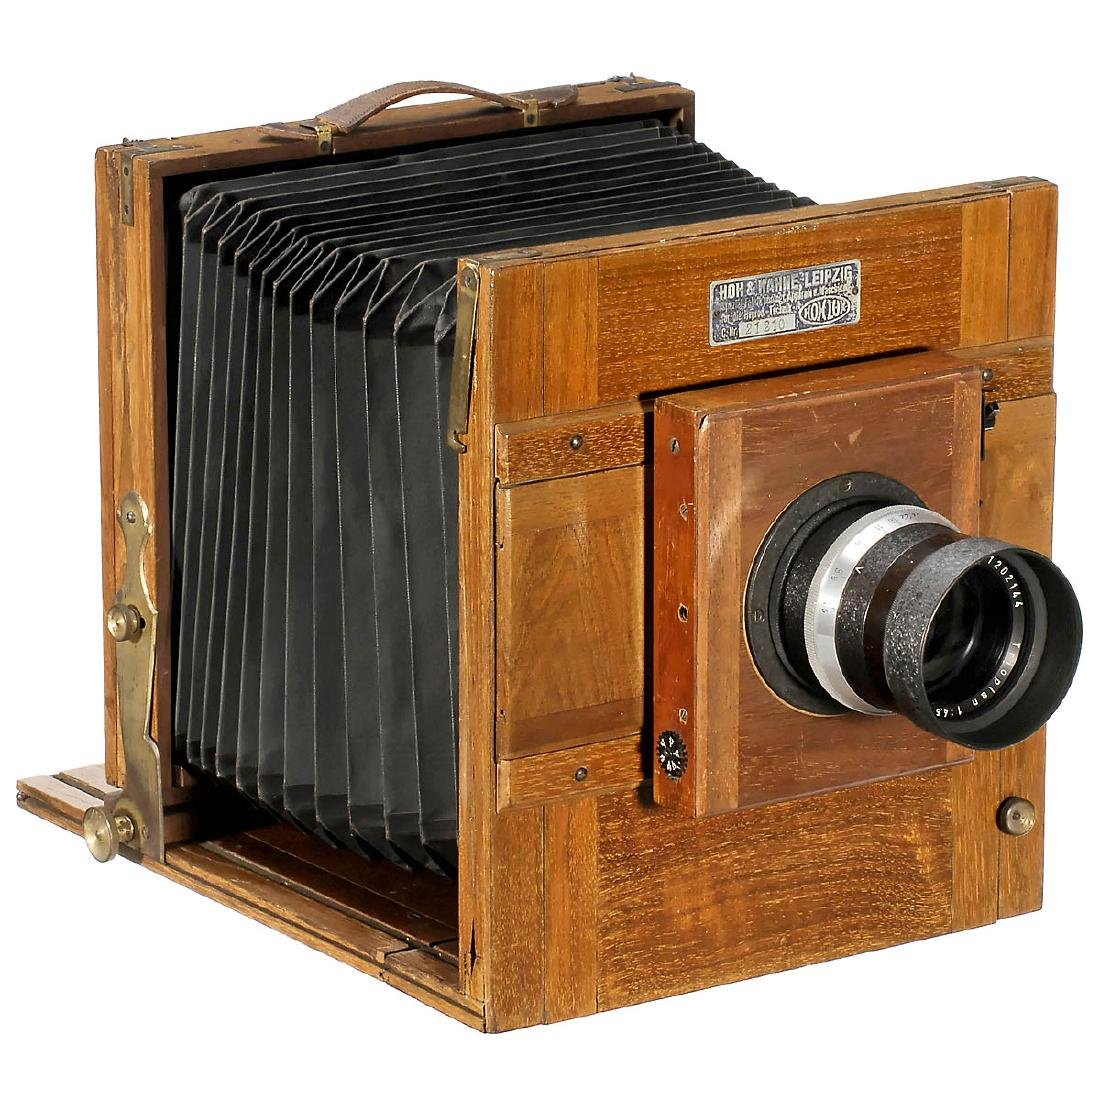 Hohlux Field and Repro Camera by Hoh & Hahne, c.